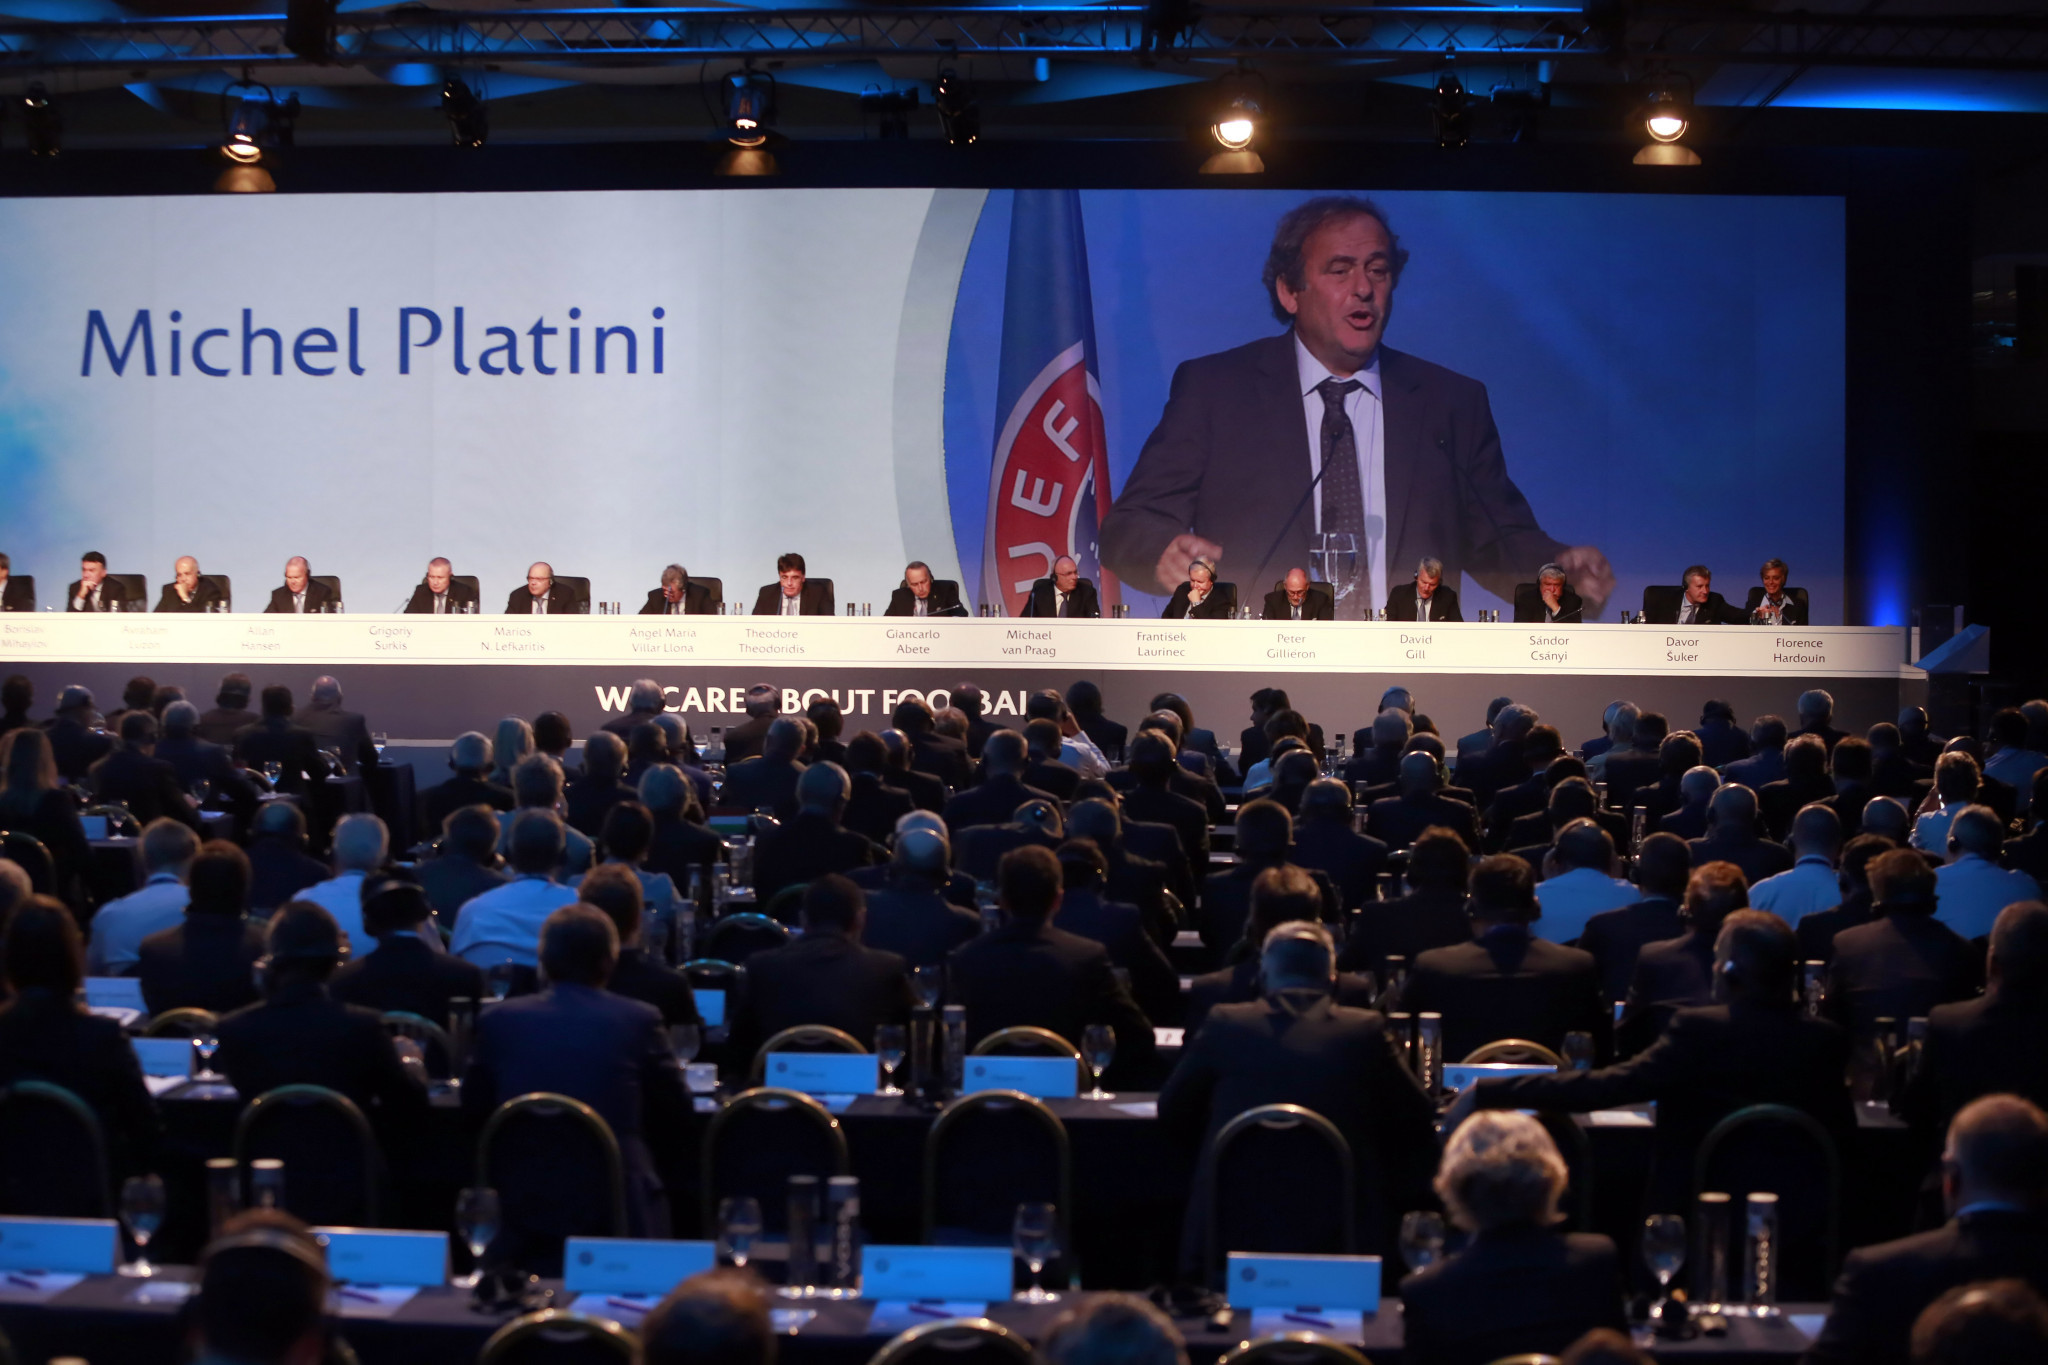 Michel Platini was UEFA President from 2007 to 2015 ©Getty Images